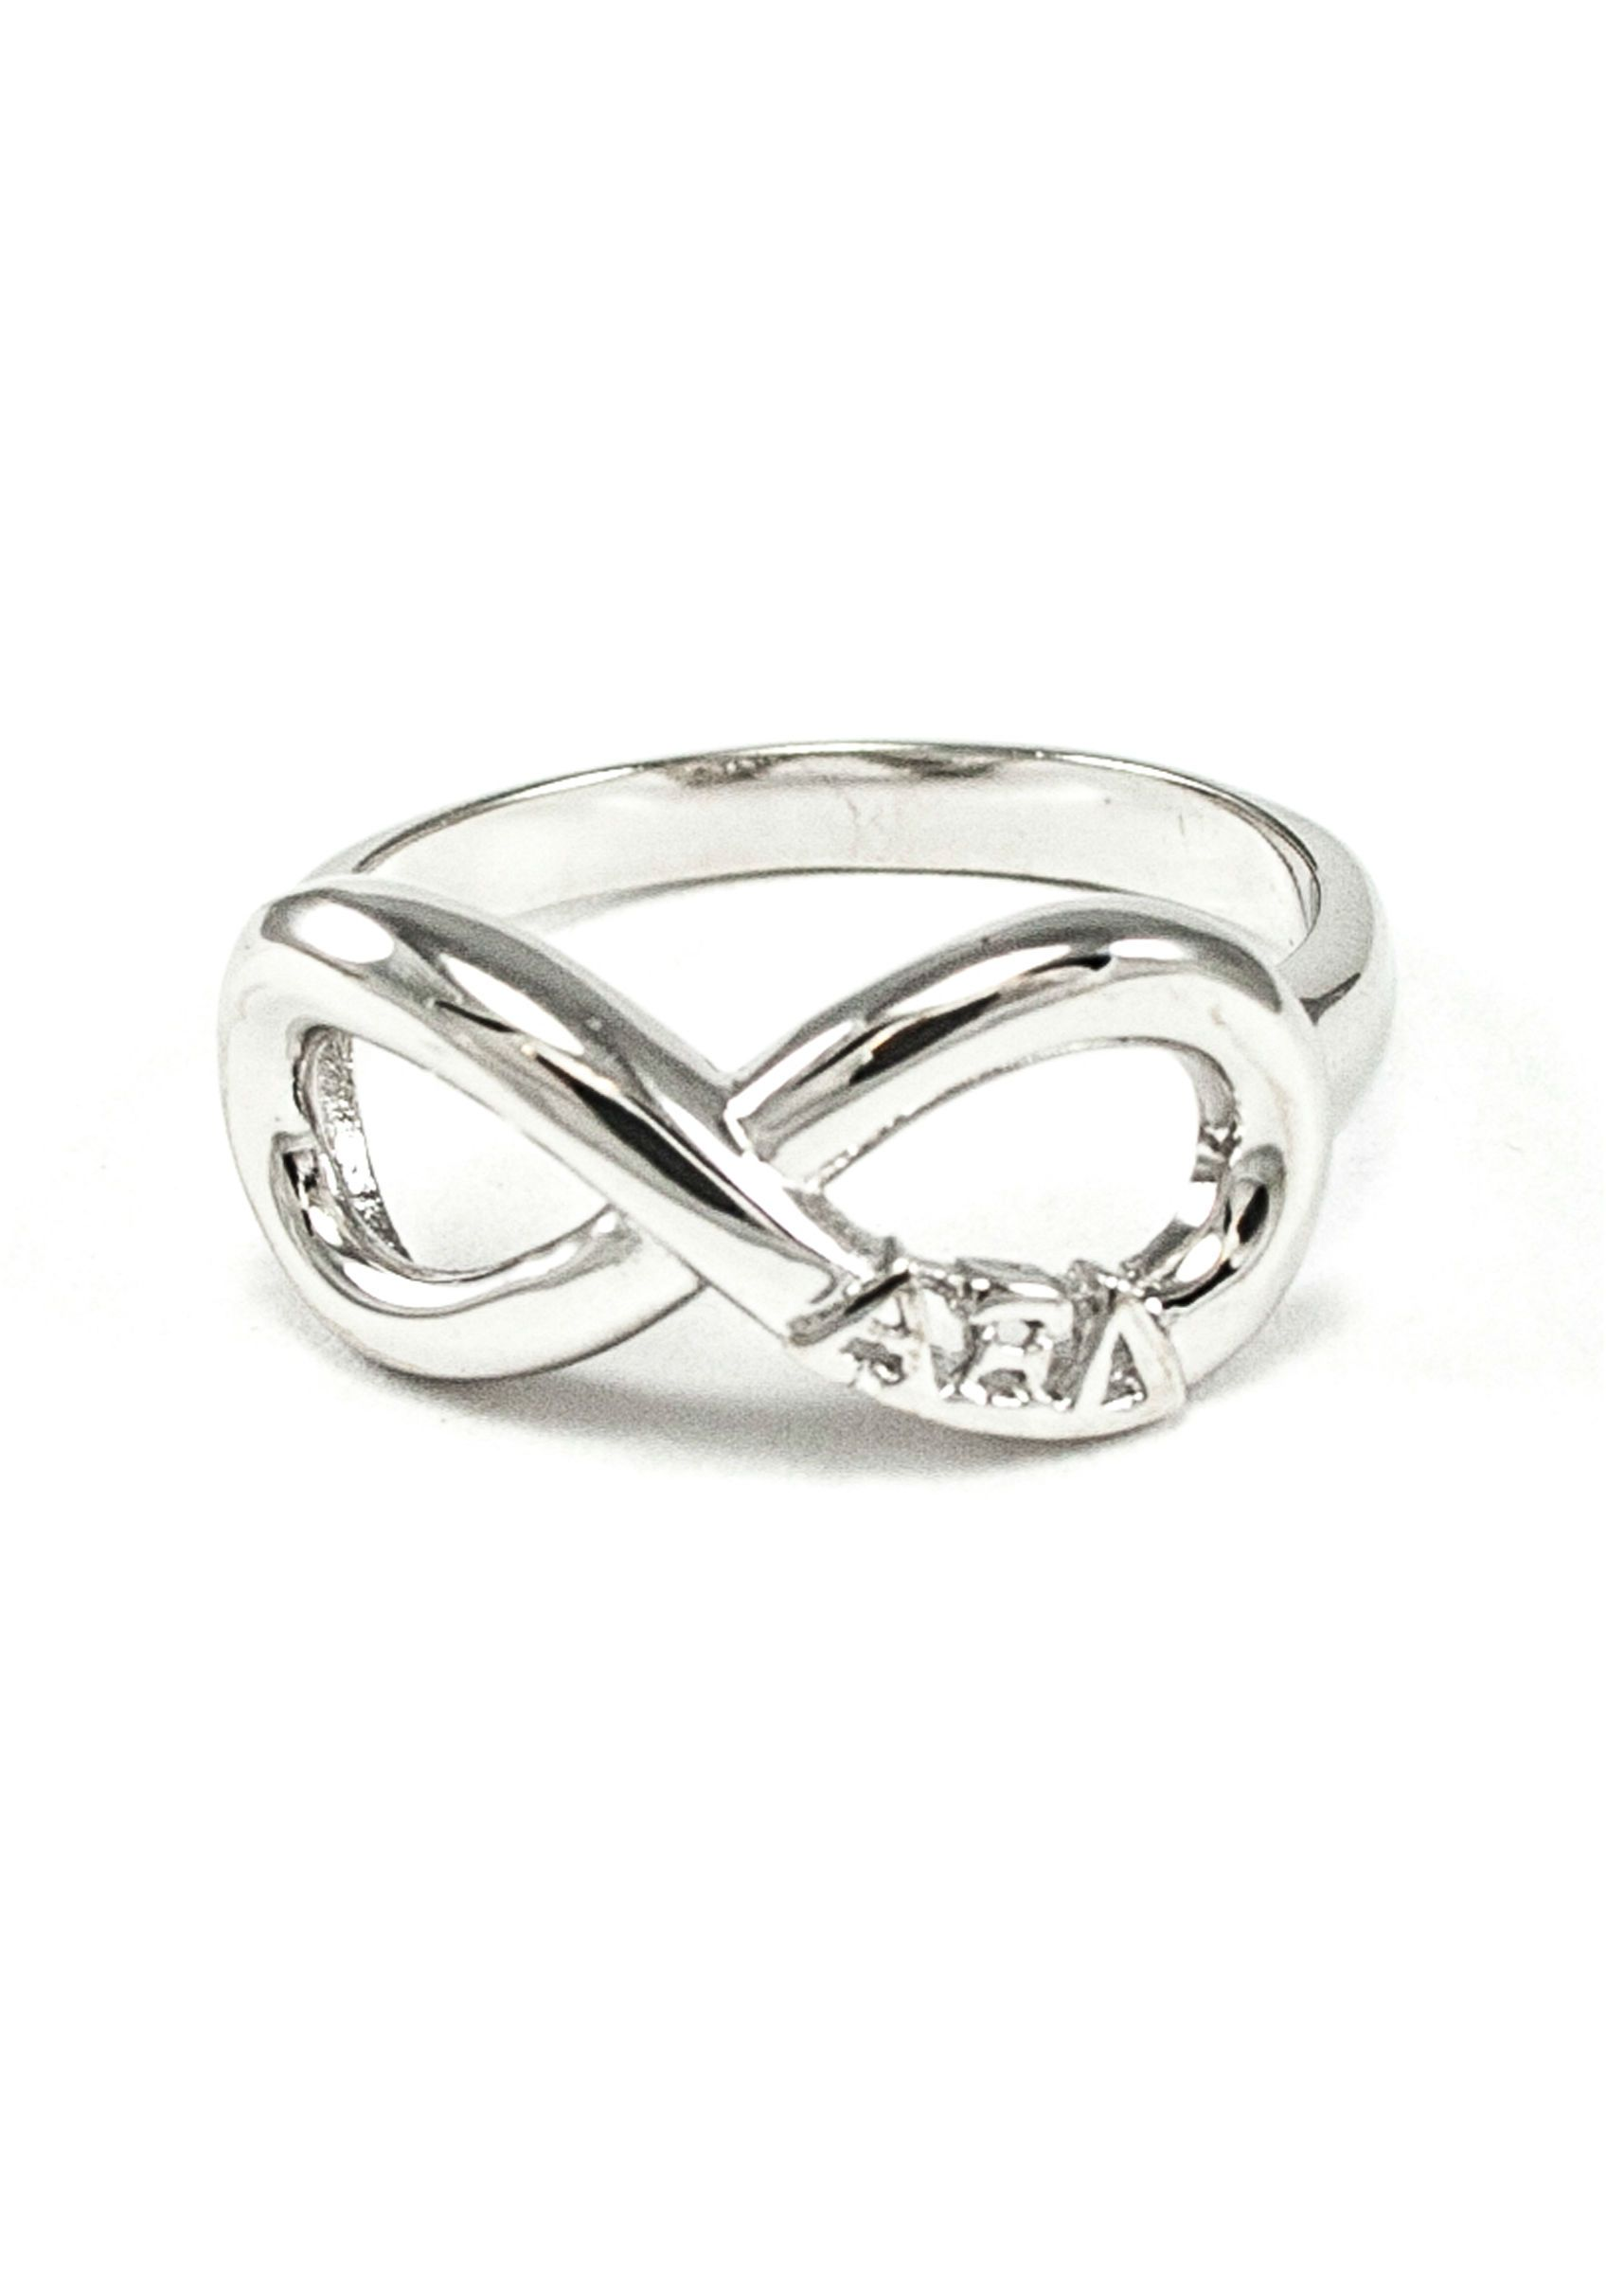 d cathy jewel en rings prong white engagement cat bird claw ring waterman greek